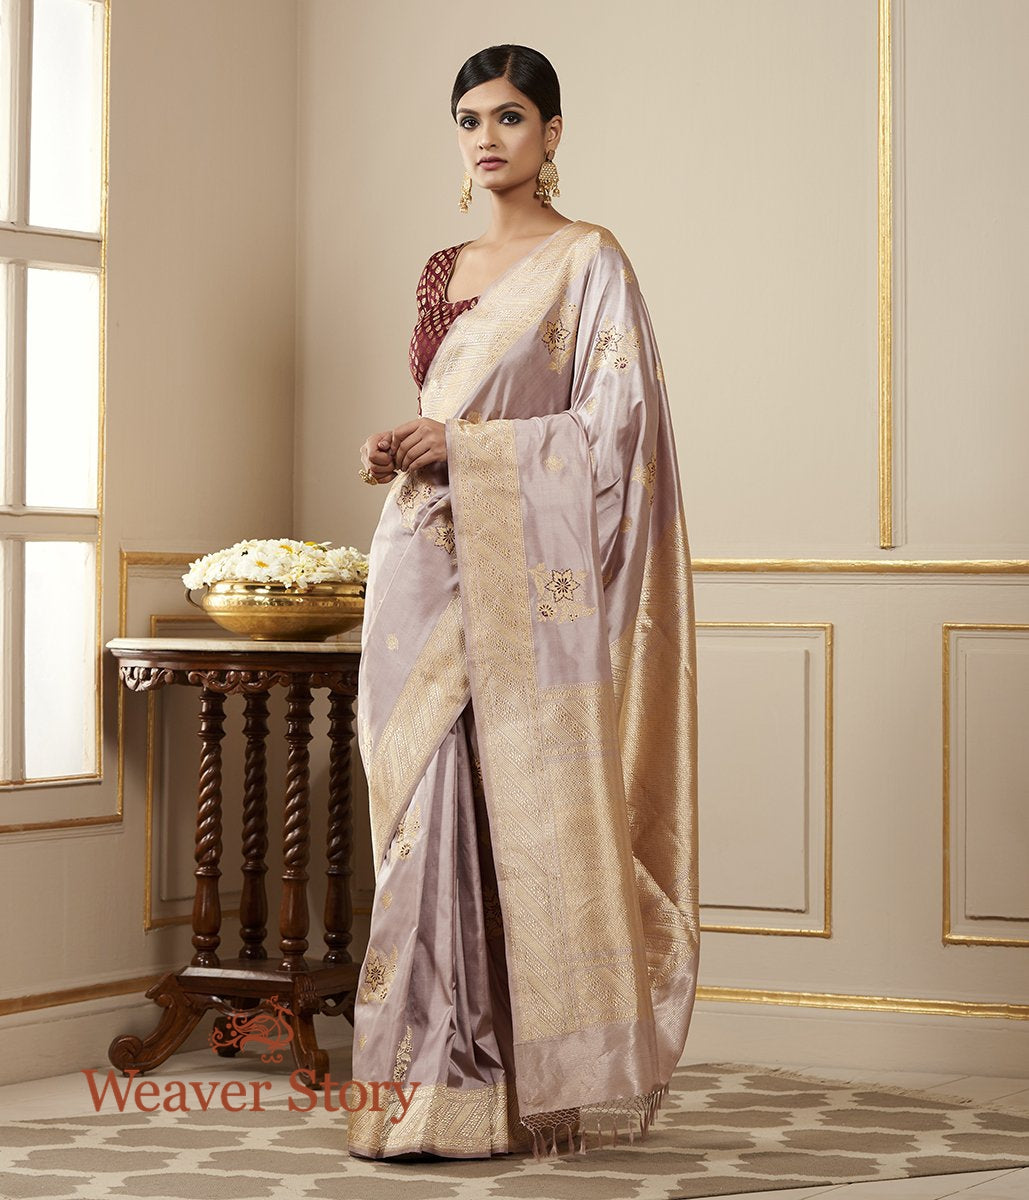 Handwoven Soft Mauve Kadhwa Boota Saree with Meenakari